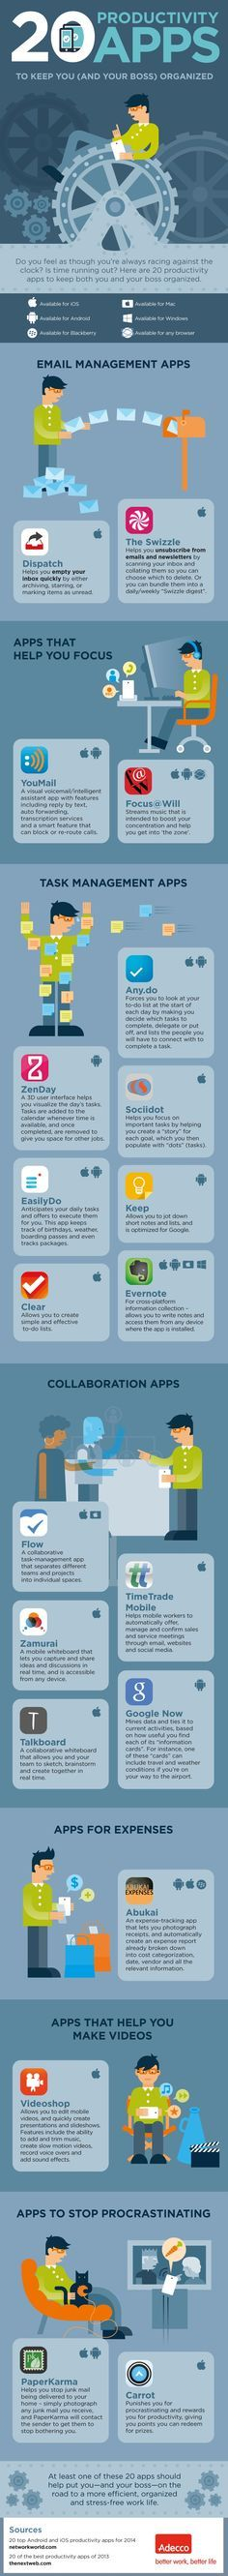 20 Productivity Apps To Keep You And Your Boss Organised